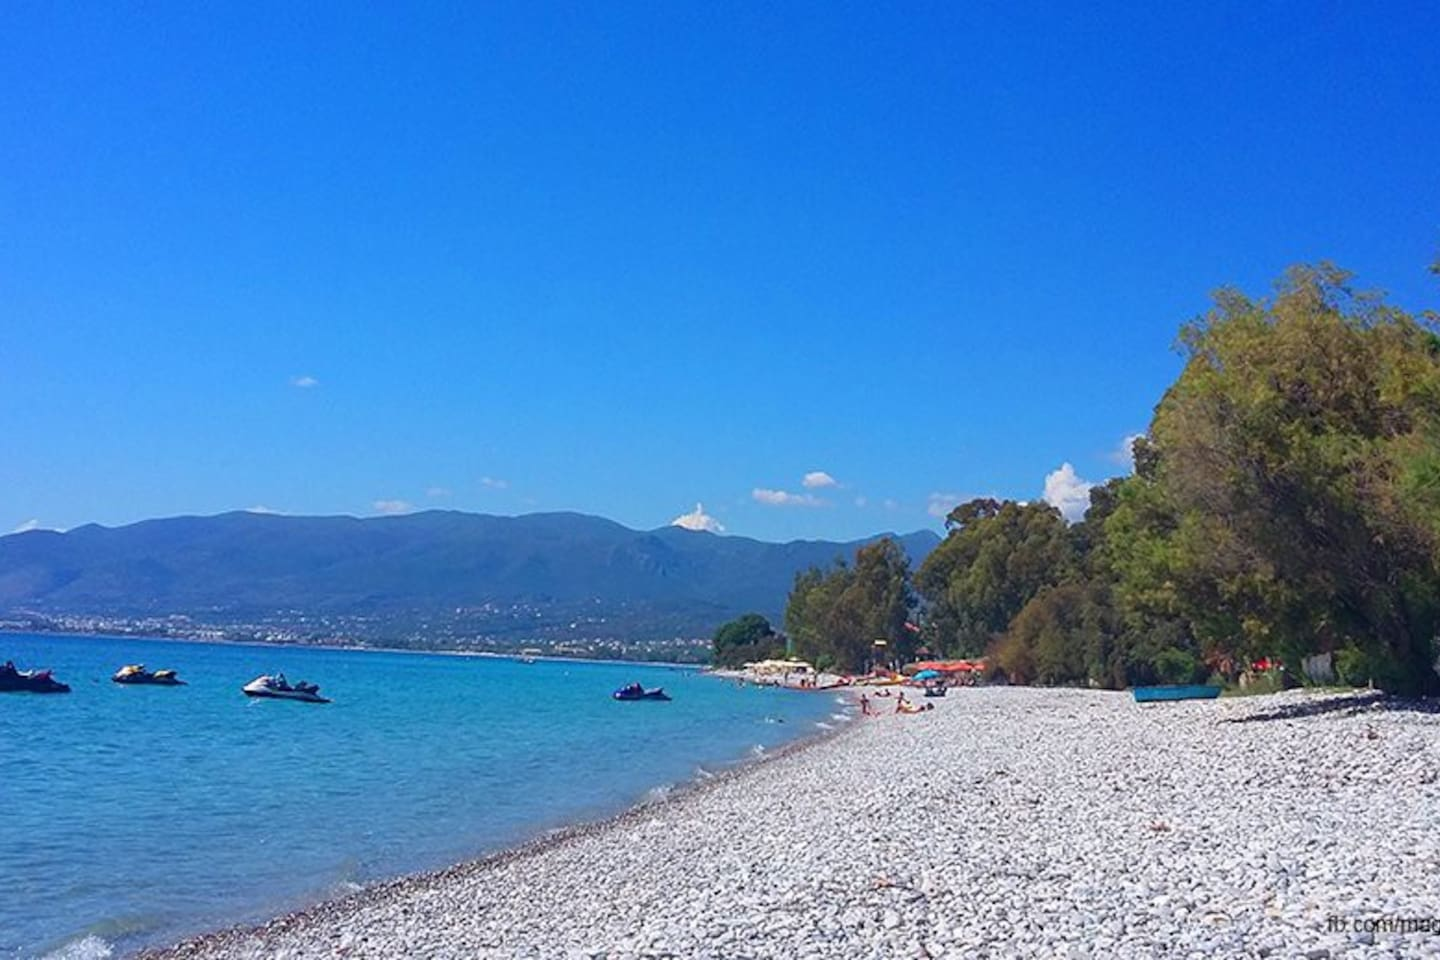 Mikri Mantinia blueflagged beach (4km from the place)